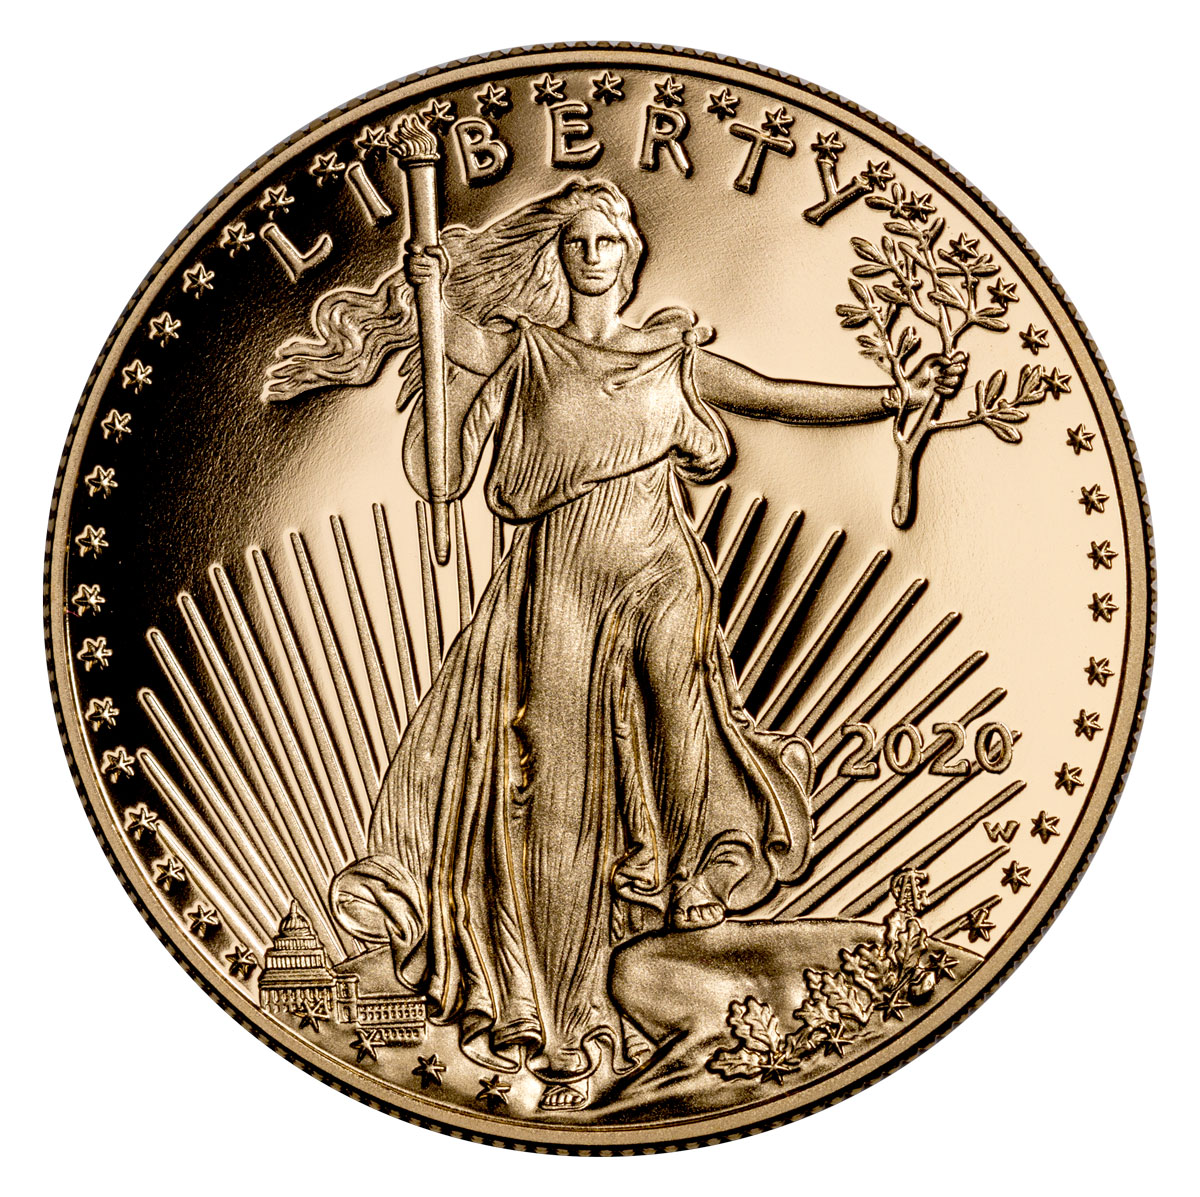 2020-W 1 oz Gold American Eagle Proof $50 Coin GEM Proof OGP